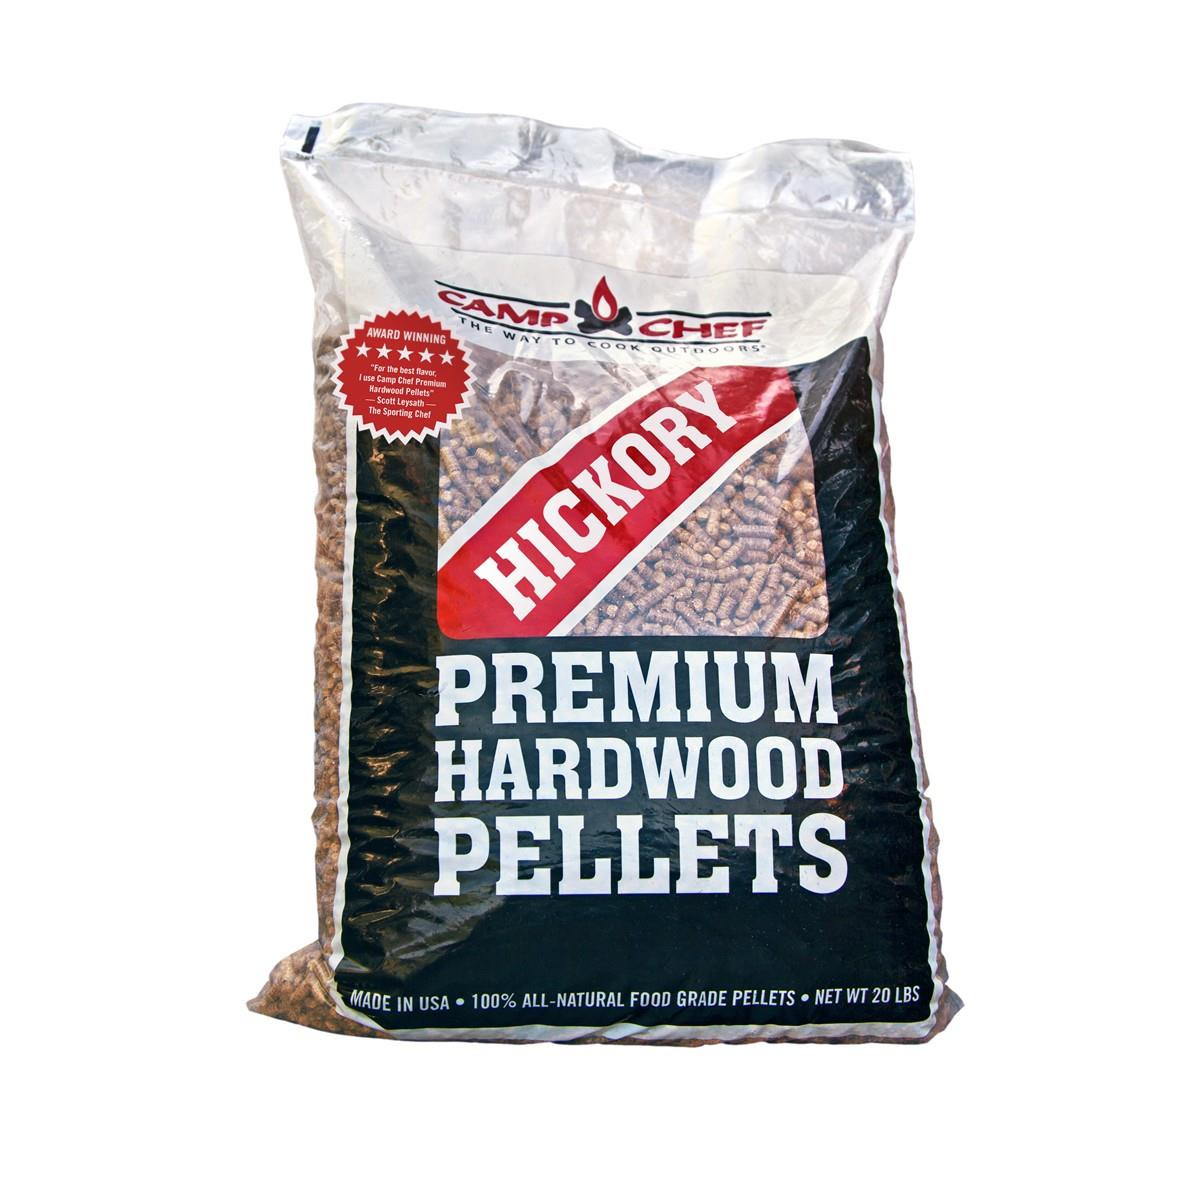 Camp Chef Hardwood Pellets 20LBS - Hickory - 033246212739